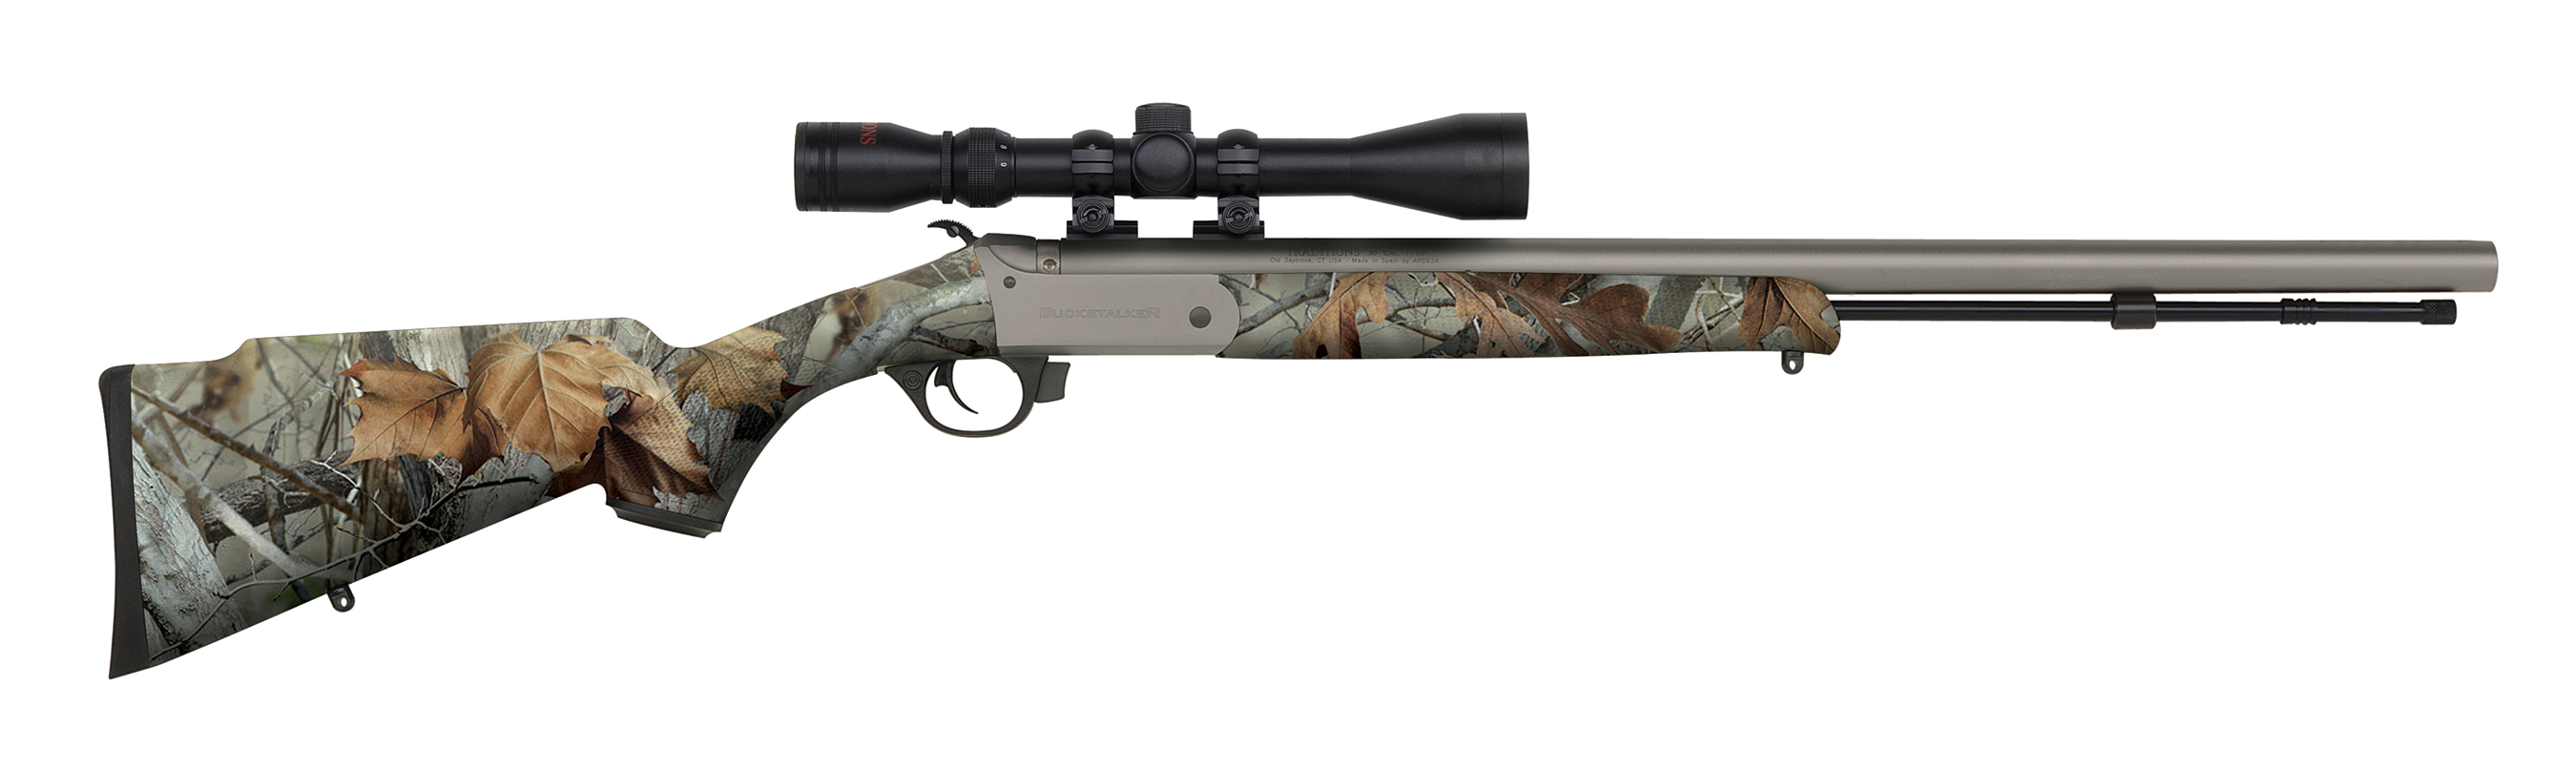 Traditions BUCKSTALKER 50 CALIBER